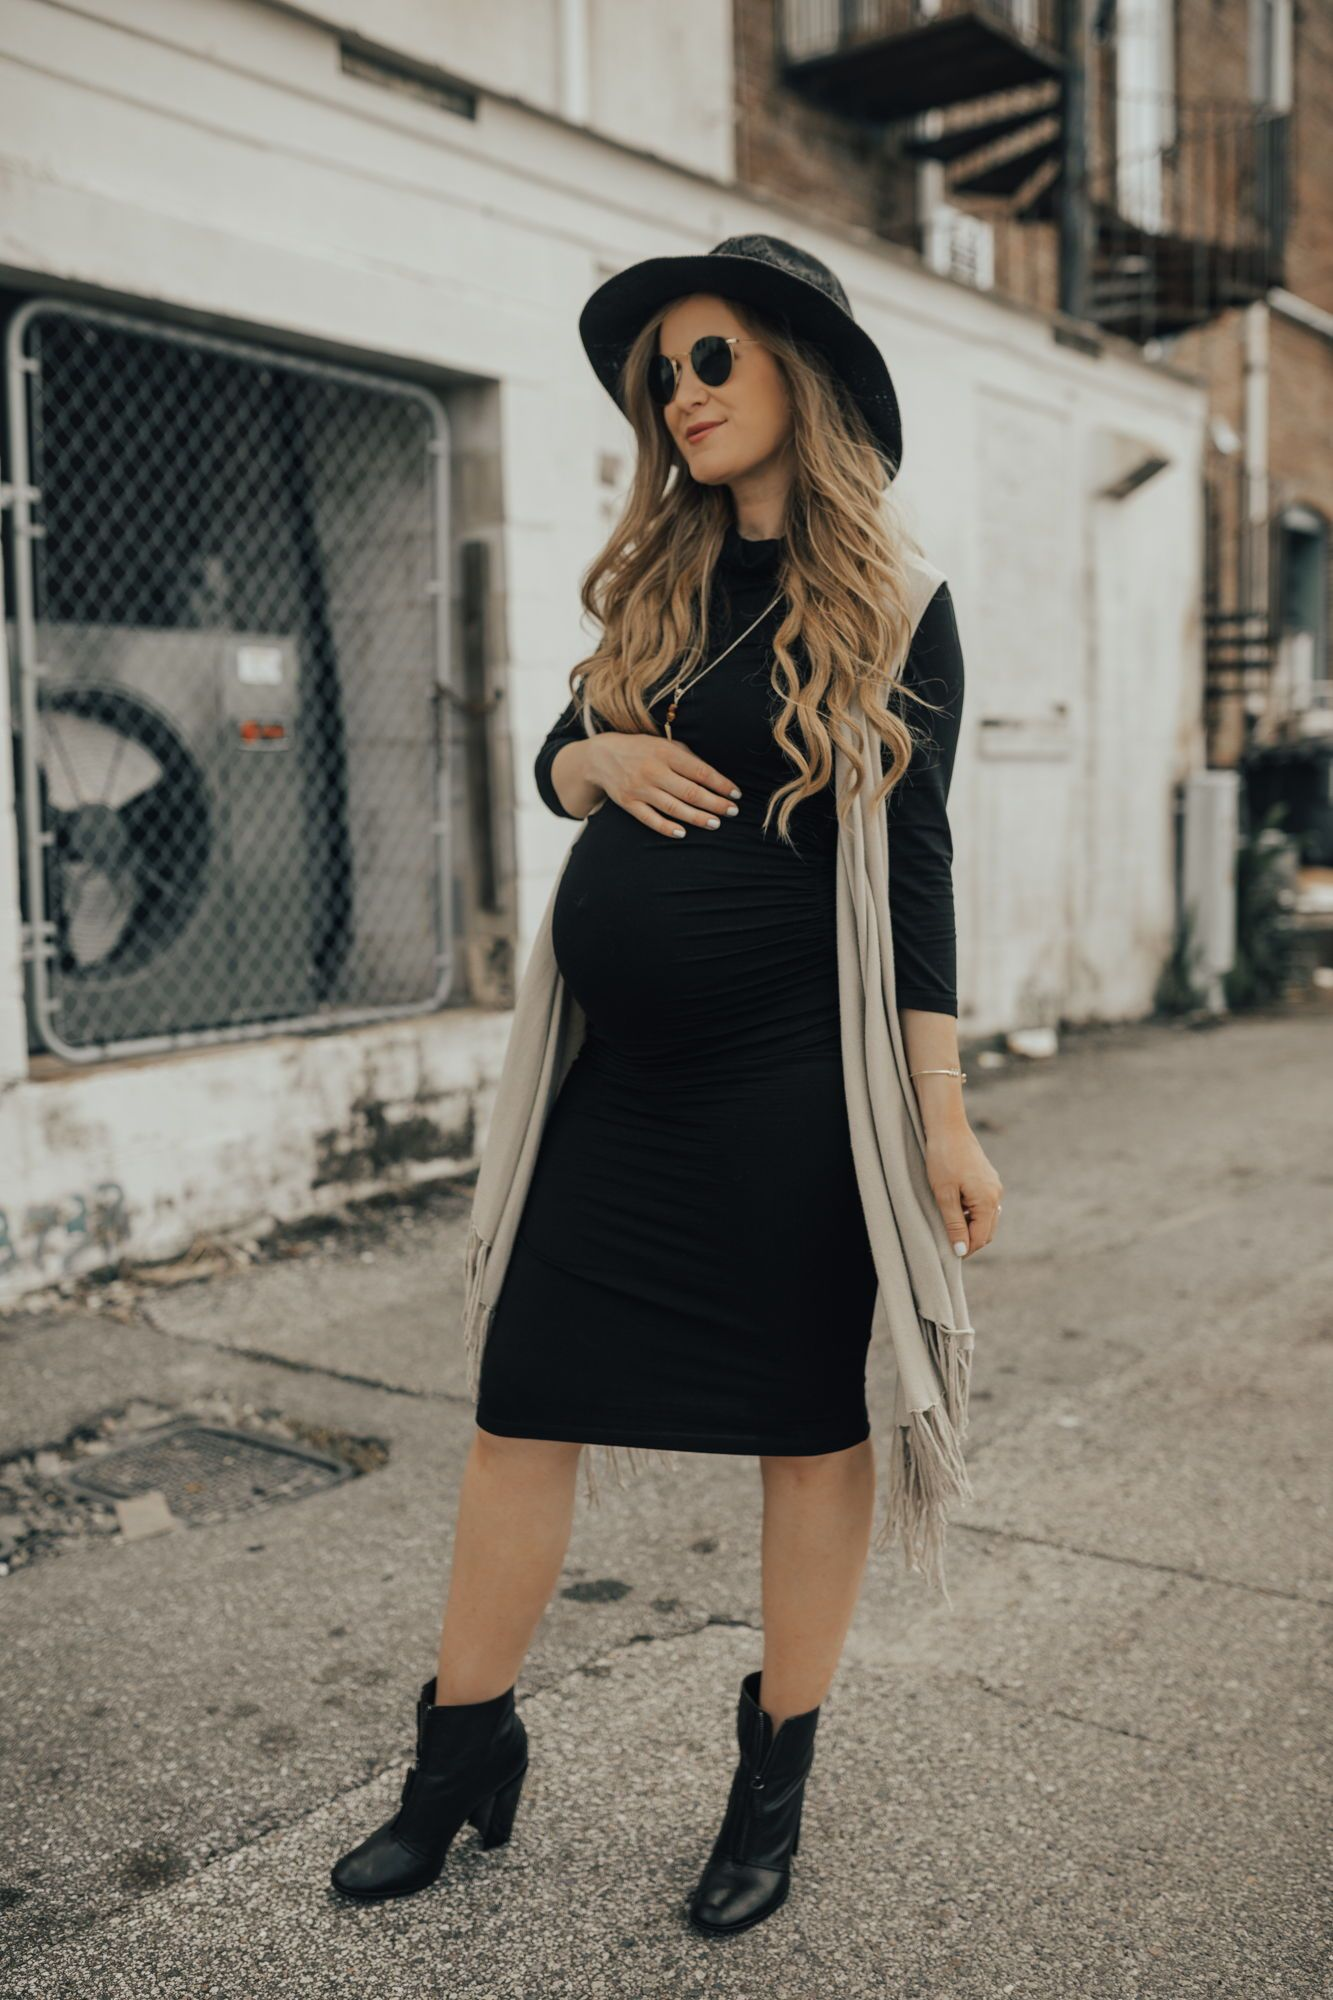 68cc0659c92 ... Style Picks by Upbeat Soles. Cute maternity date night outfit with  stretchy maternity dress